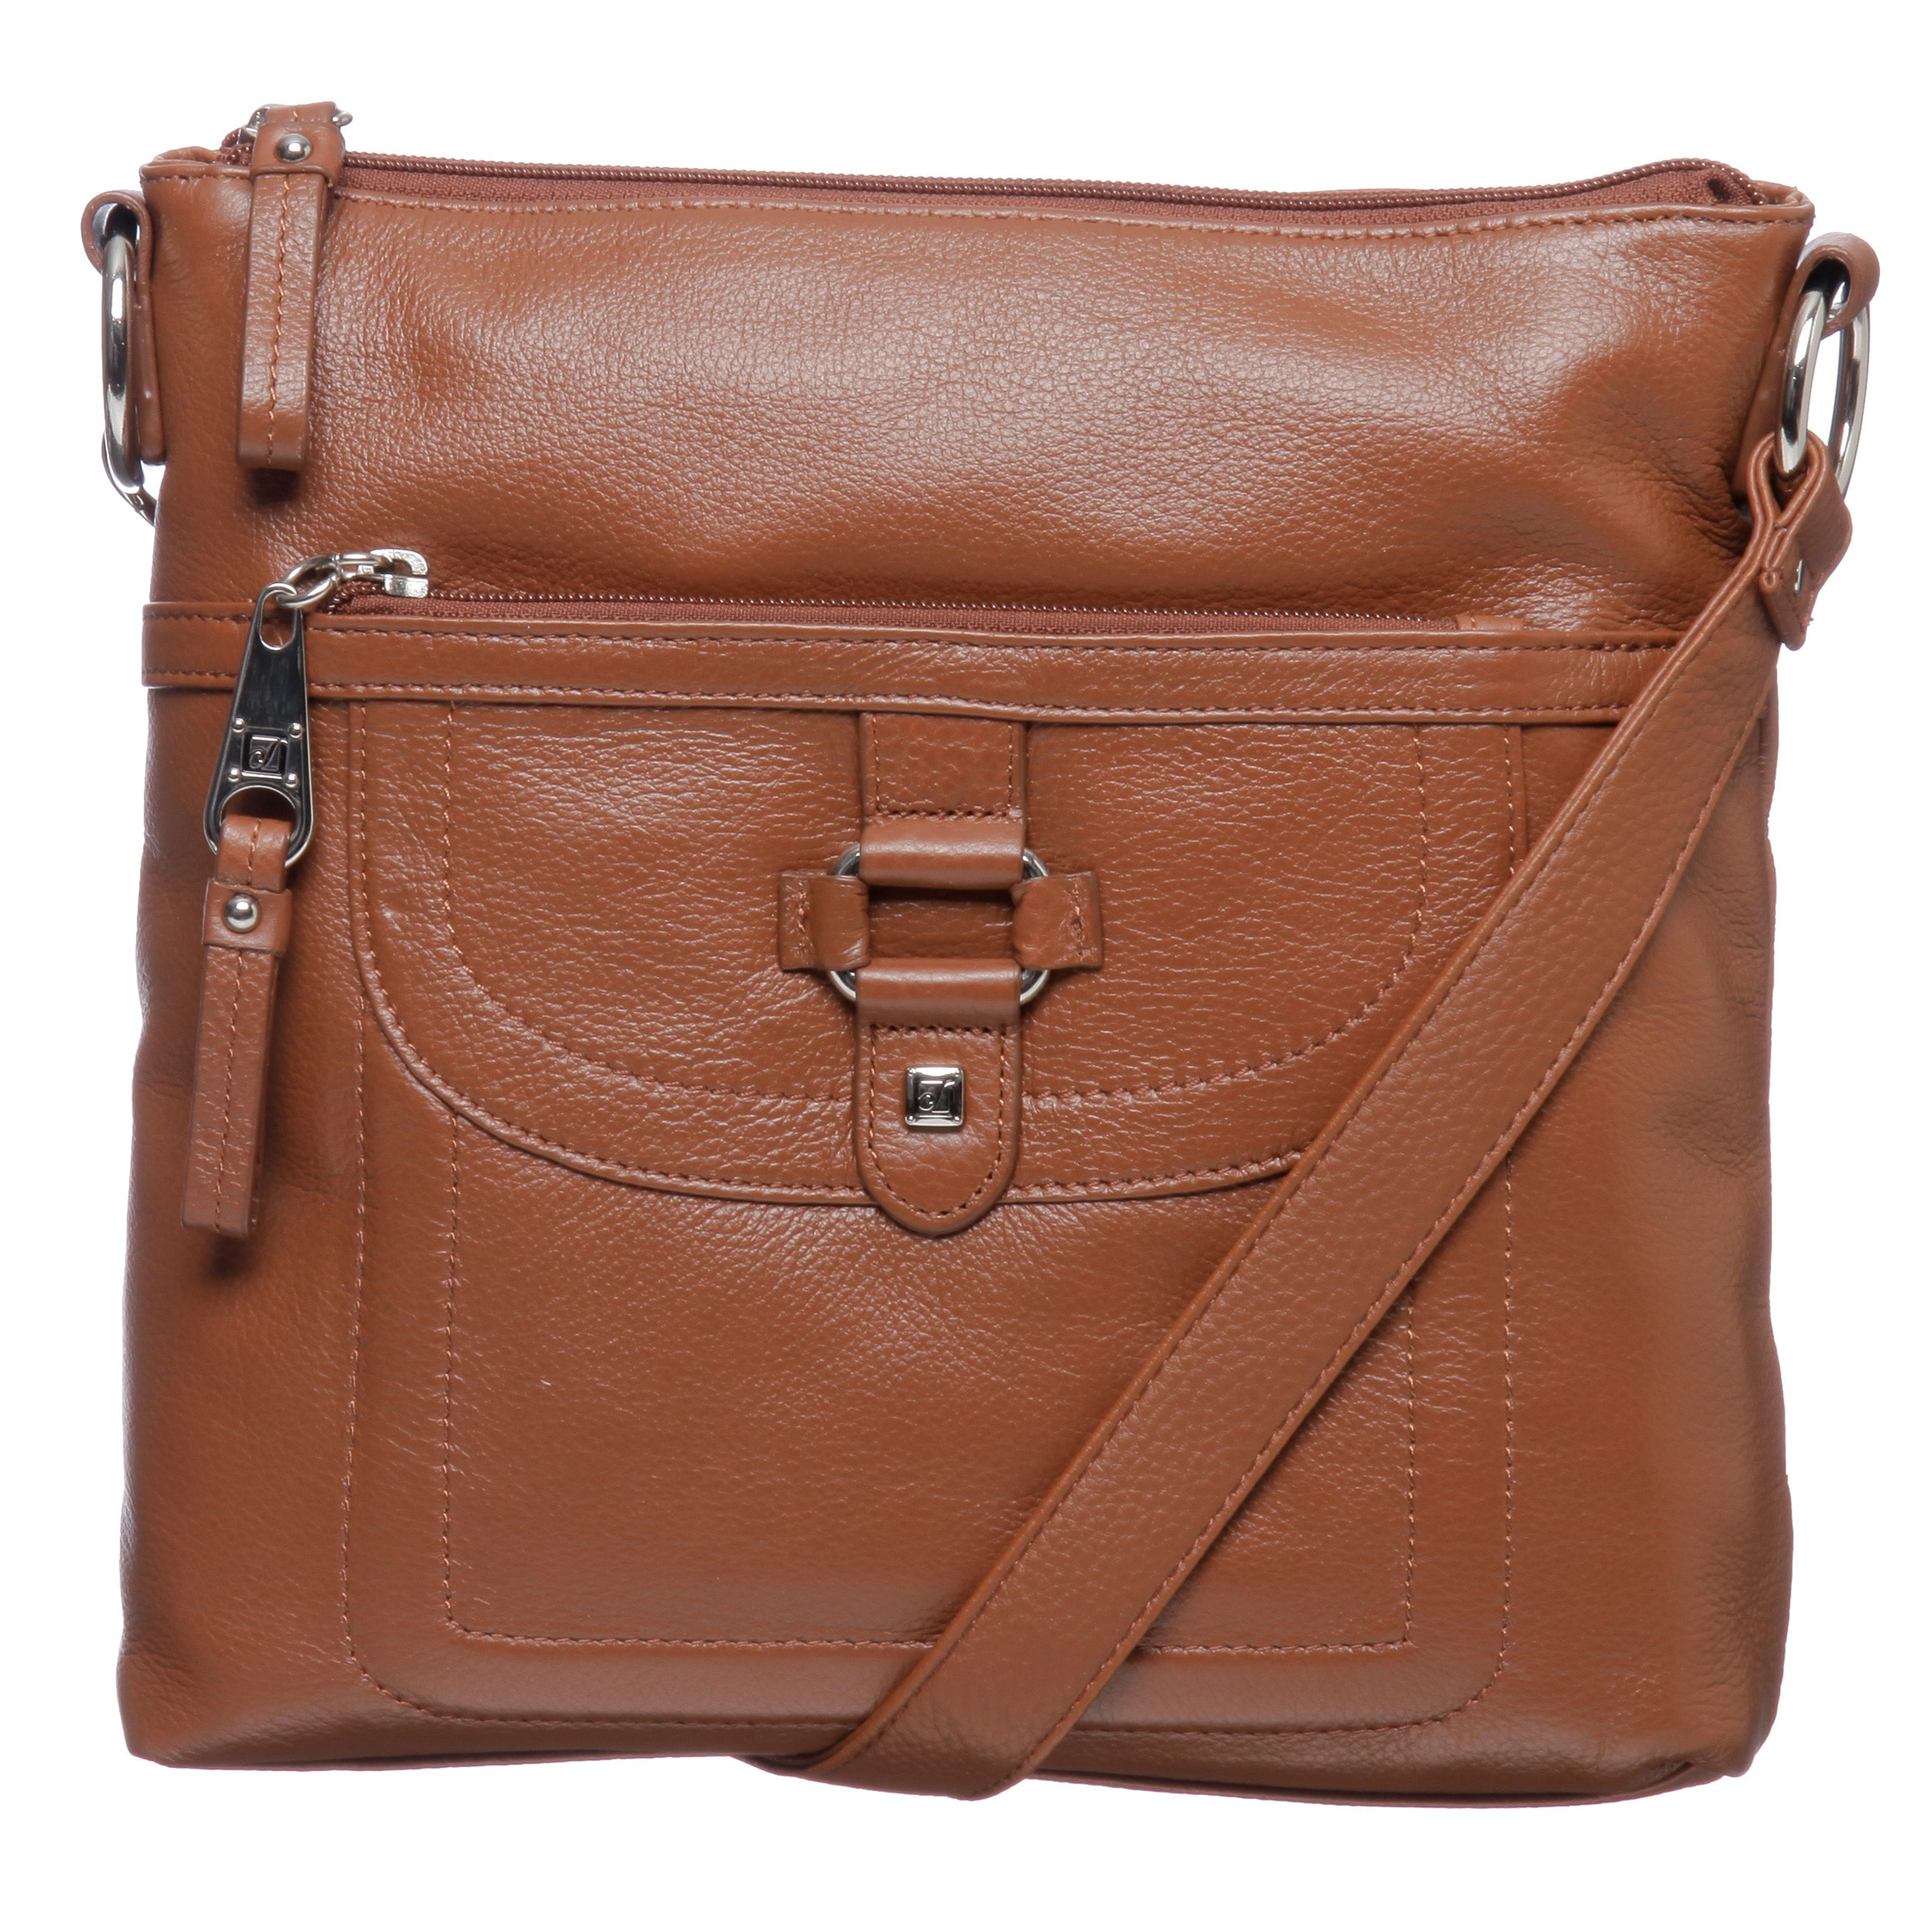 Stone Mountain Summit Leather Crossbody Bag Free Shipping Today 6569818